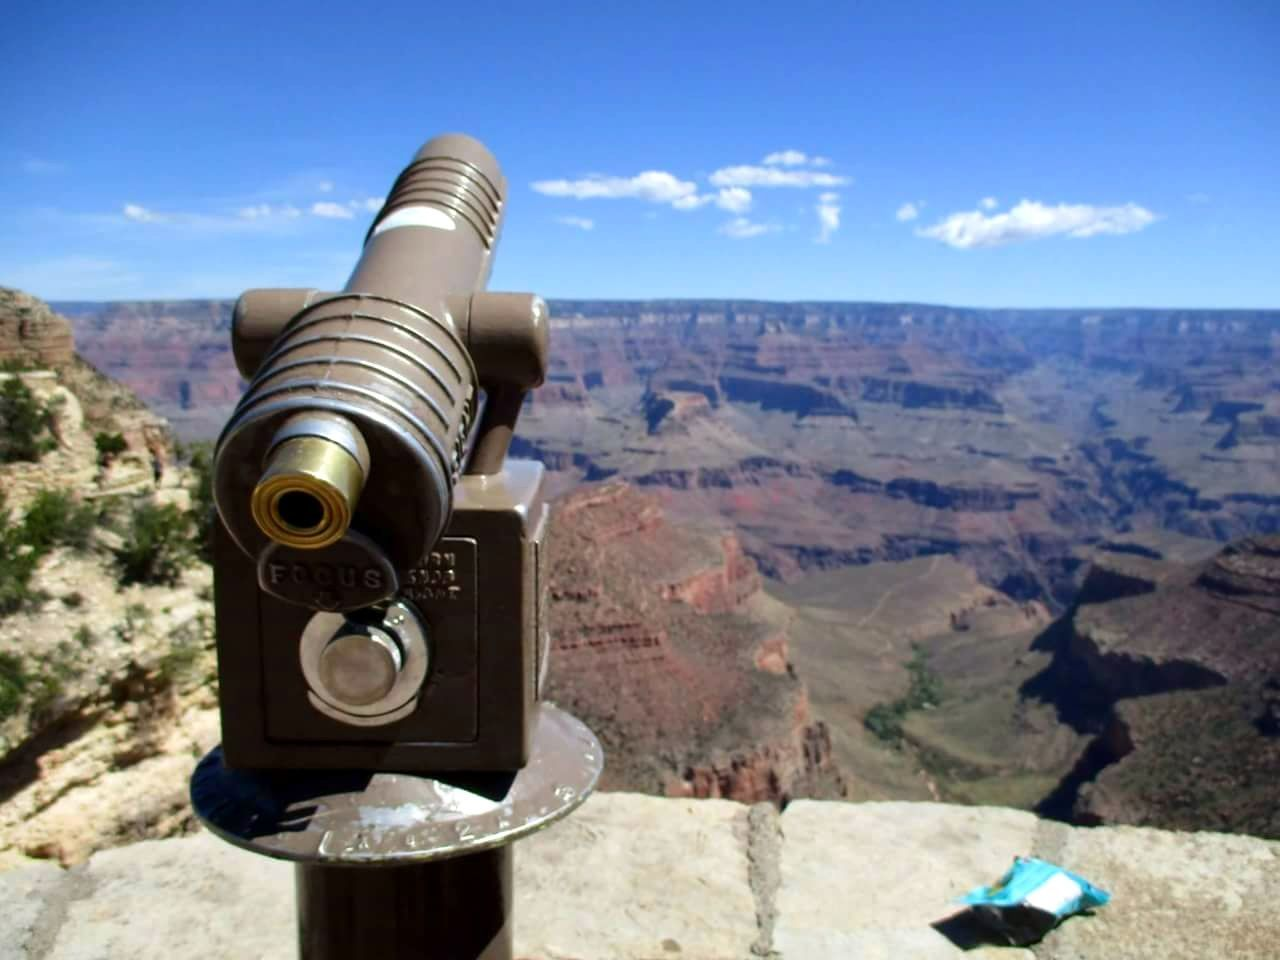 coin-operated binoculars, mountain, day, scenics, sunlight, hand-held telescope, landscape, sky, outdoors, history, travel destinations, no people, tranquility, tranquil scene, nature, shadow, mountain range, weapon, architecture, beauty in nature, close-up